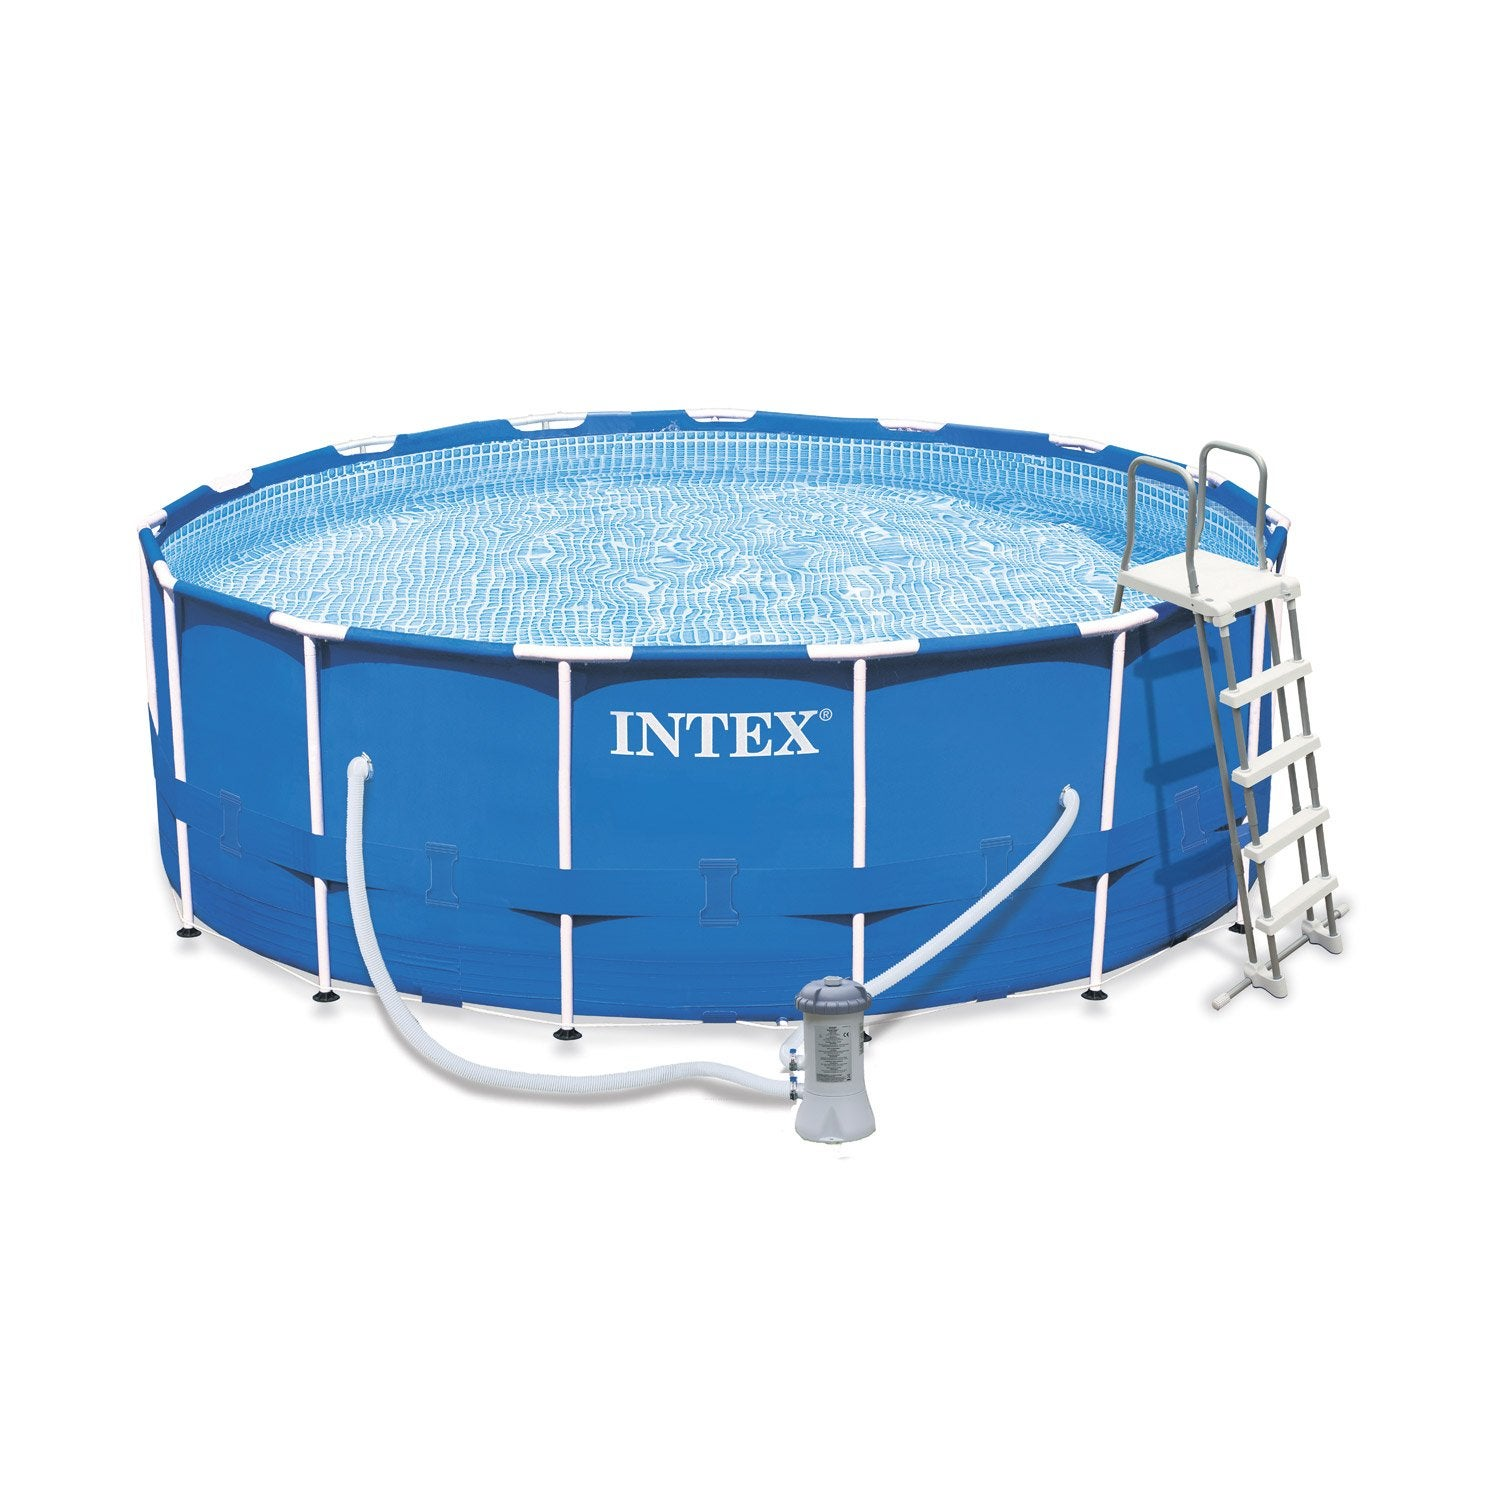 Piscine hors sol autoportante tubulaire metal frame intex for Piscine hors sol declaration